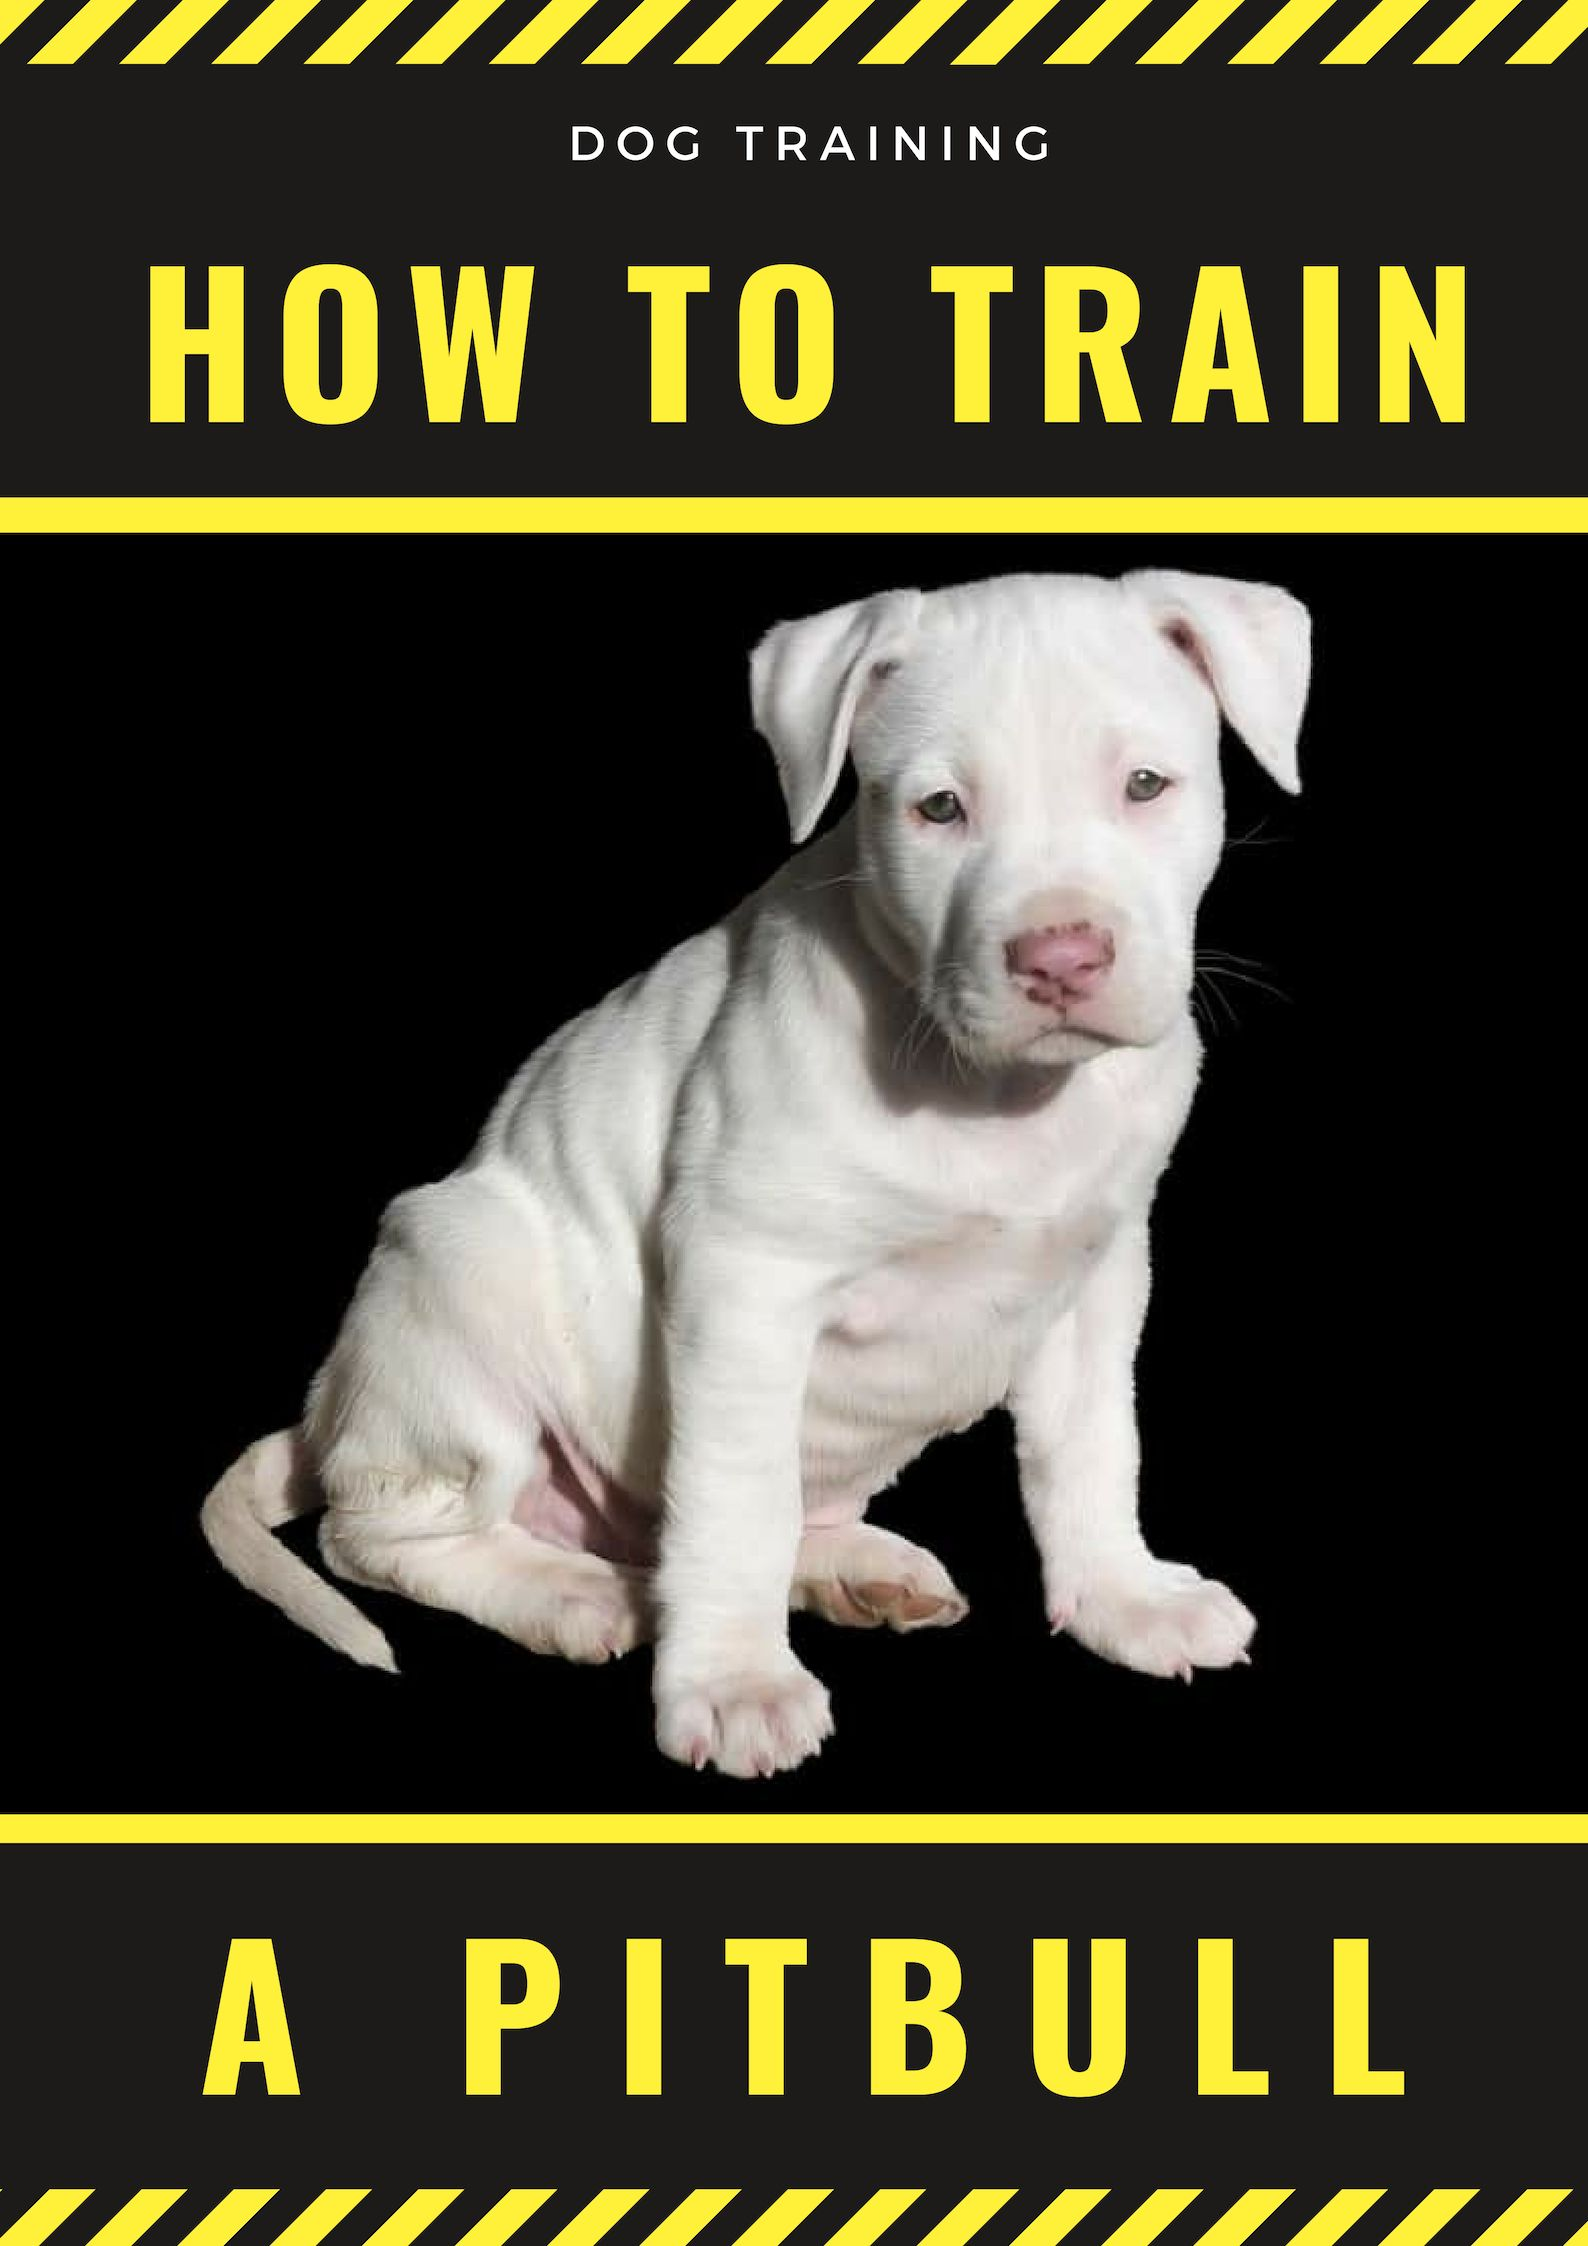 Few Quick Tips On How To Train A Pitbull Combined With Some